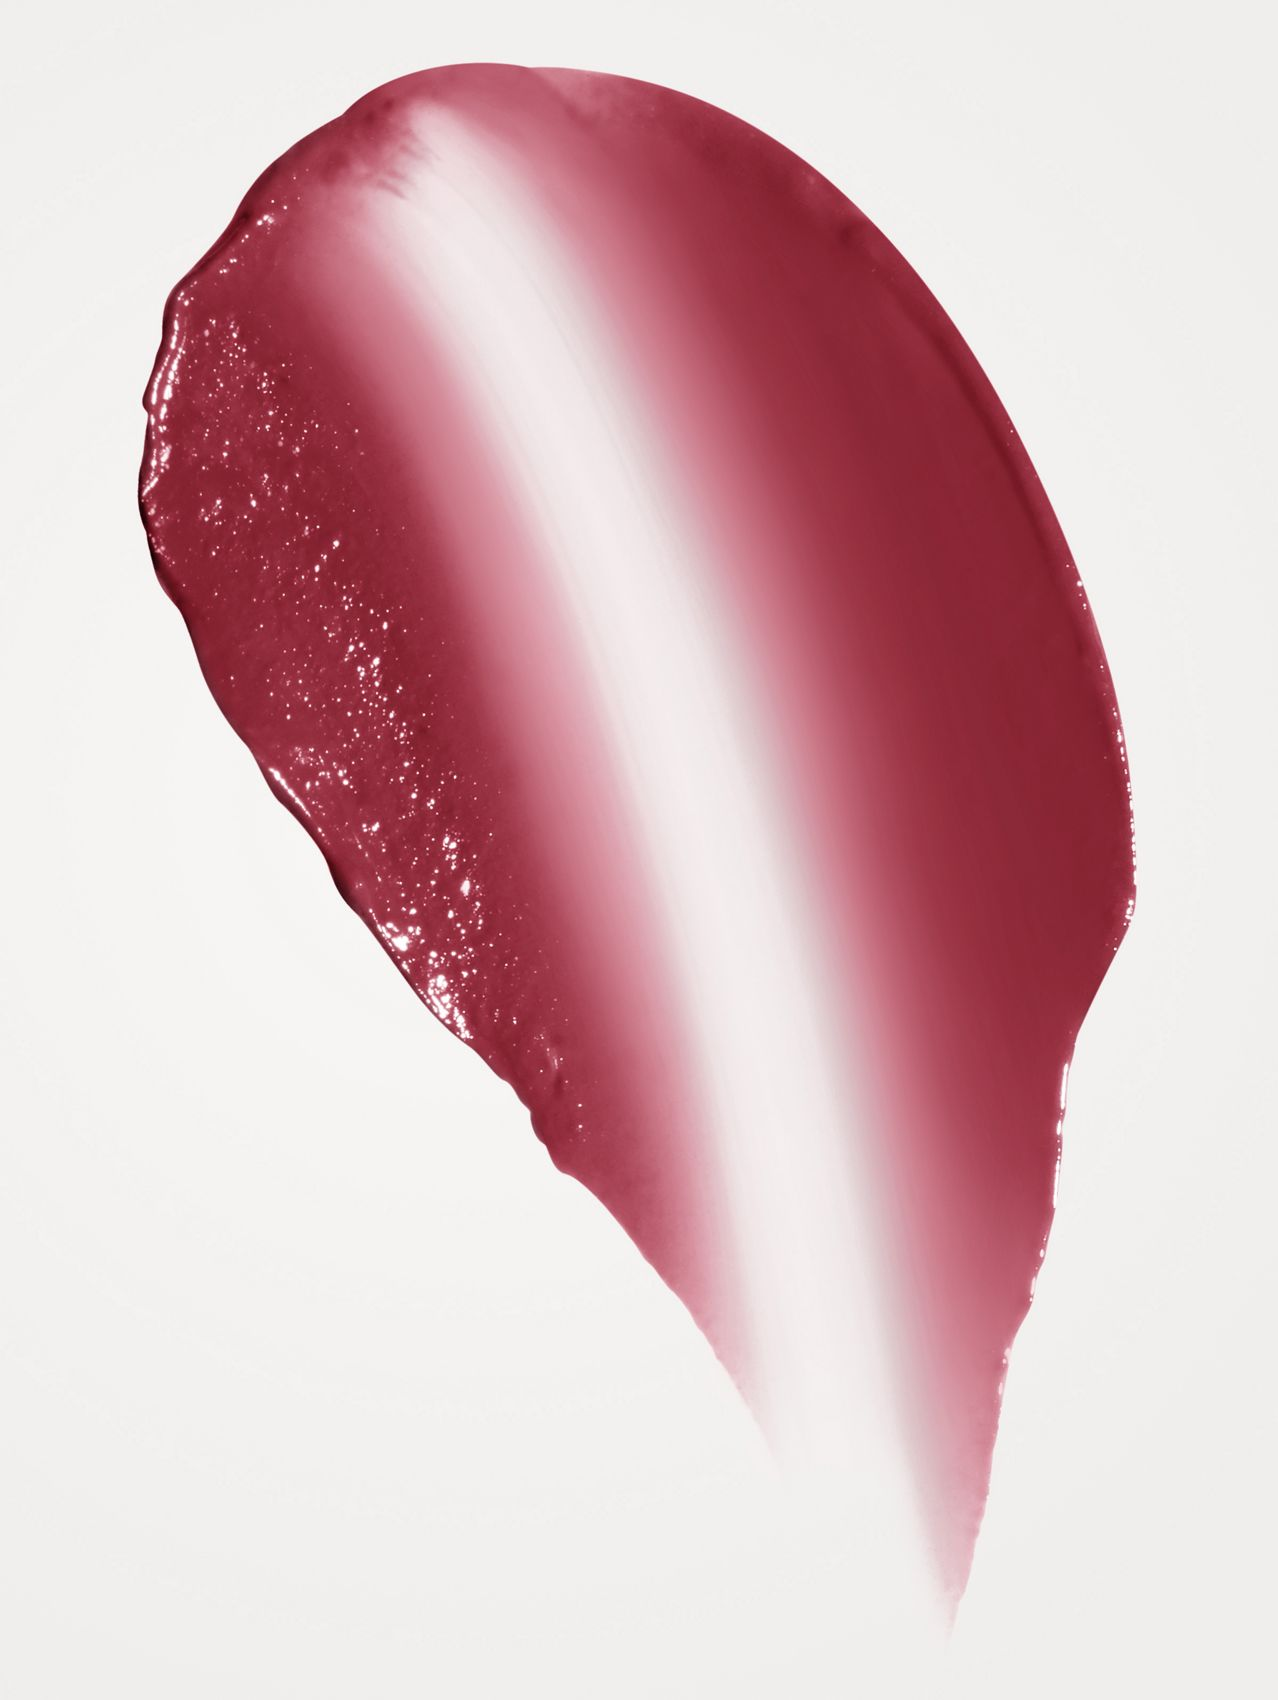 Burberry Kisses Sheer – Oxblood No.293